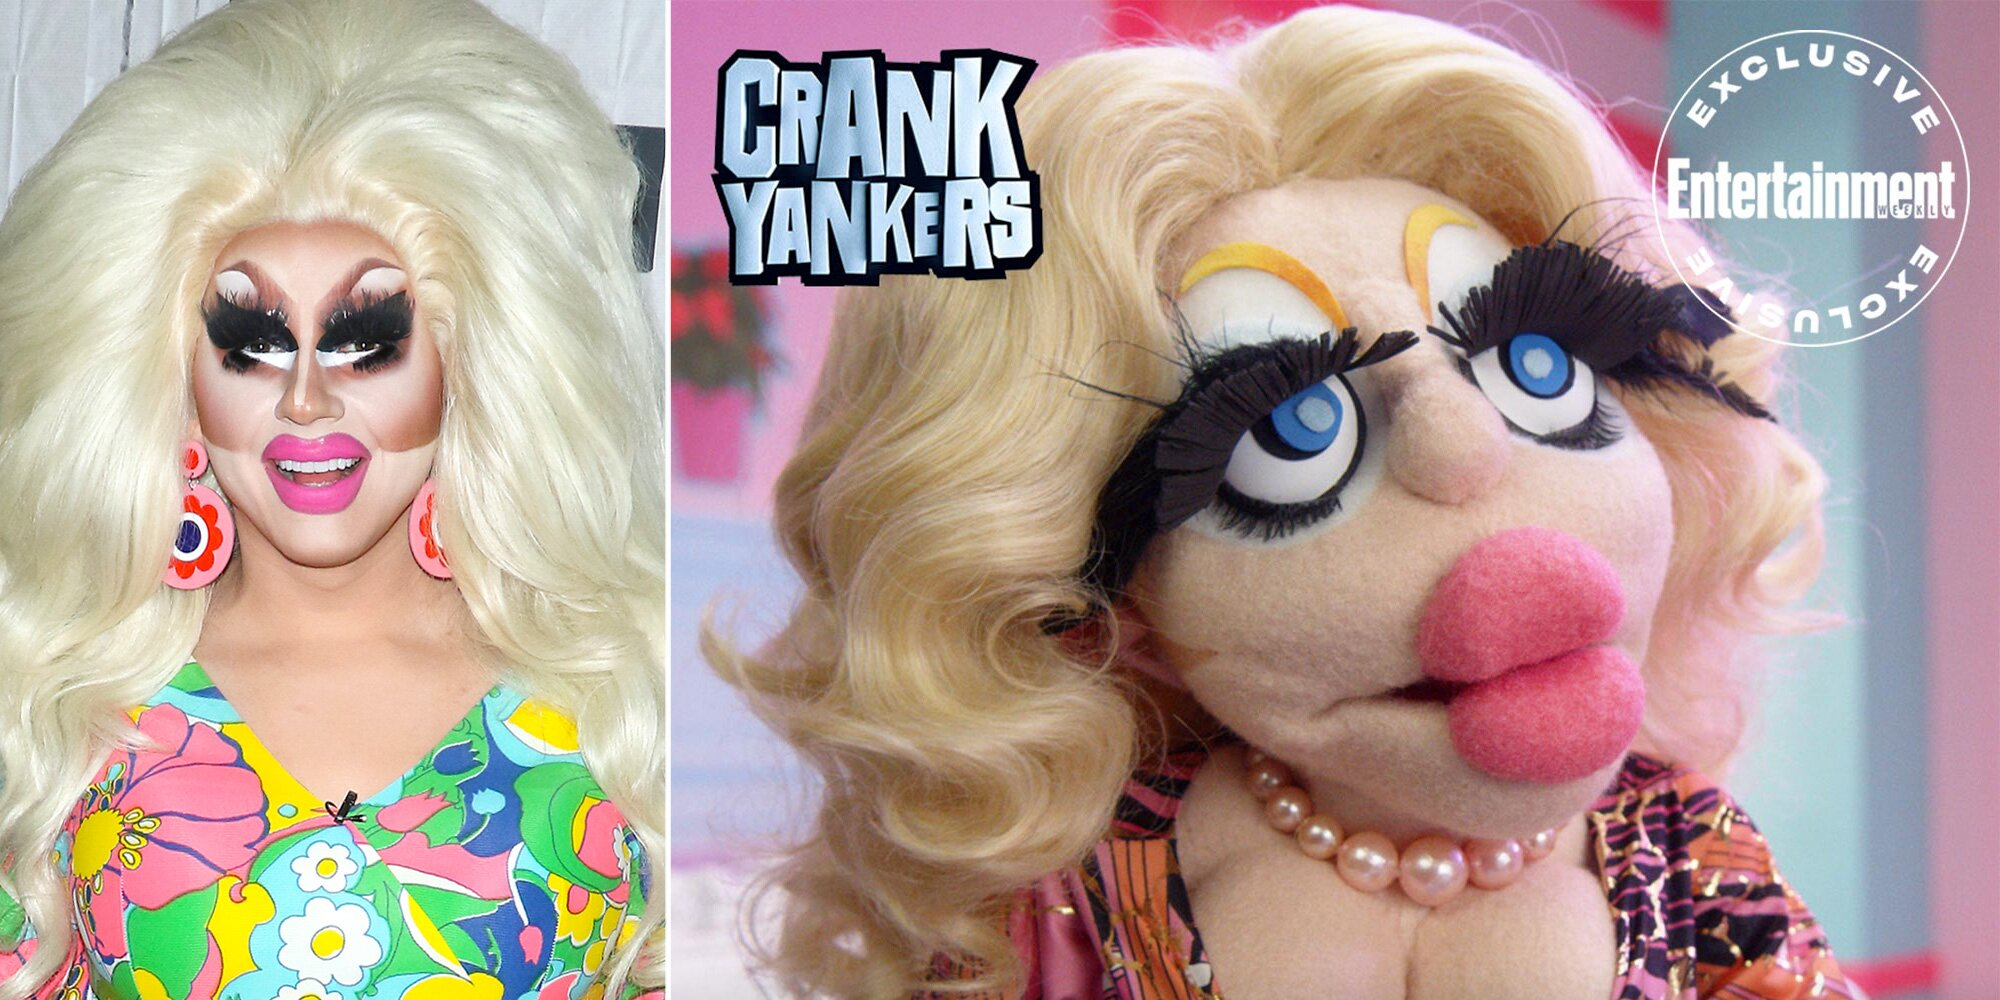 Trixie Mattel is a real doll in exclusive Crank Yankers images.jpg